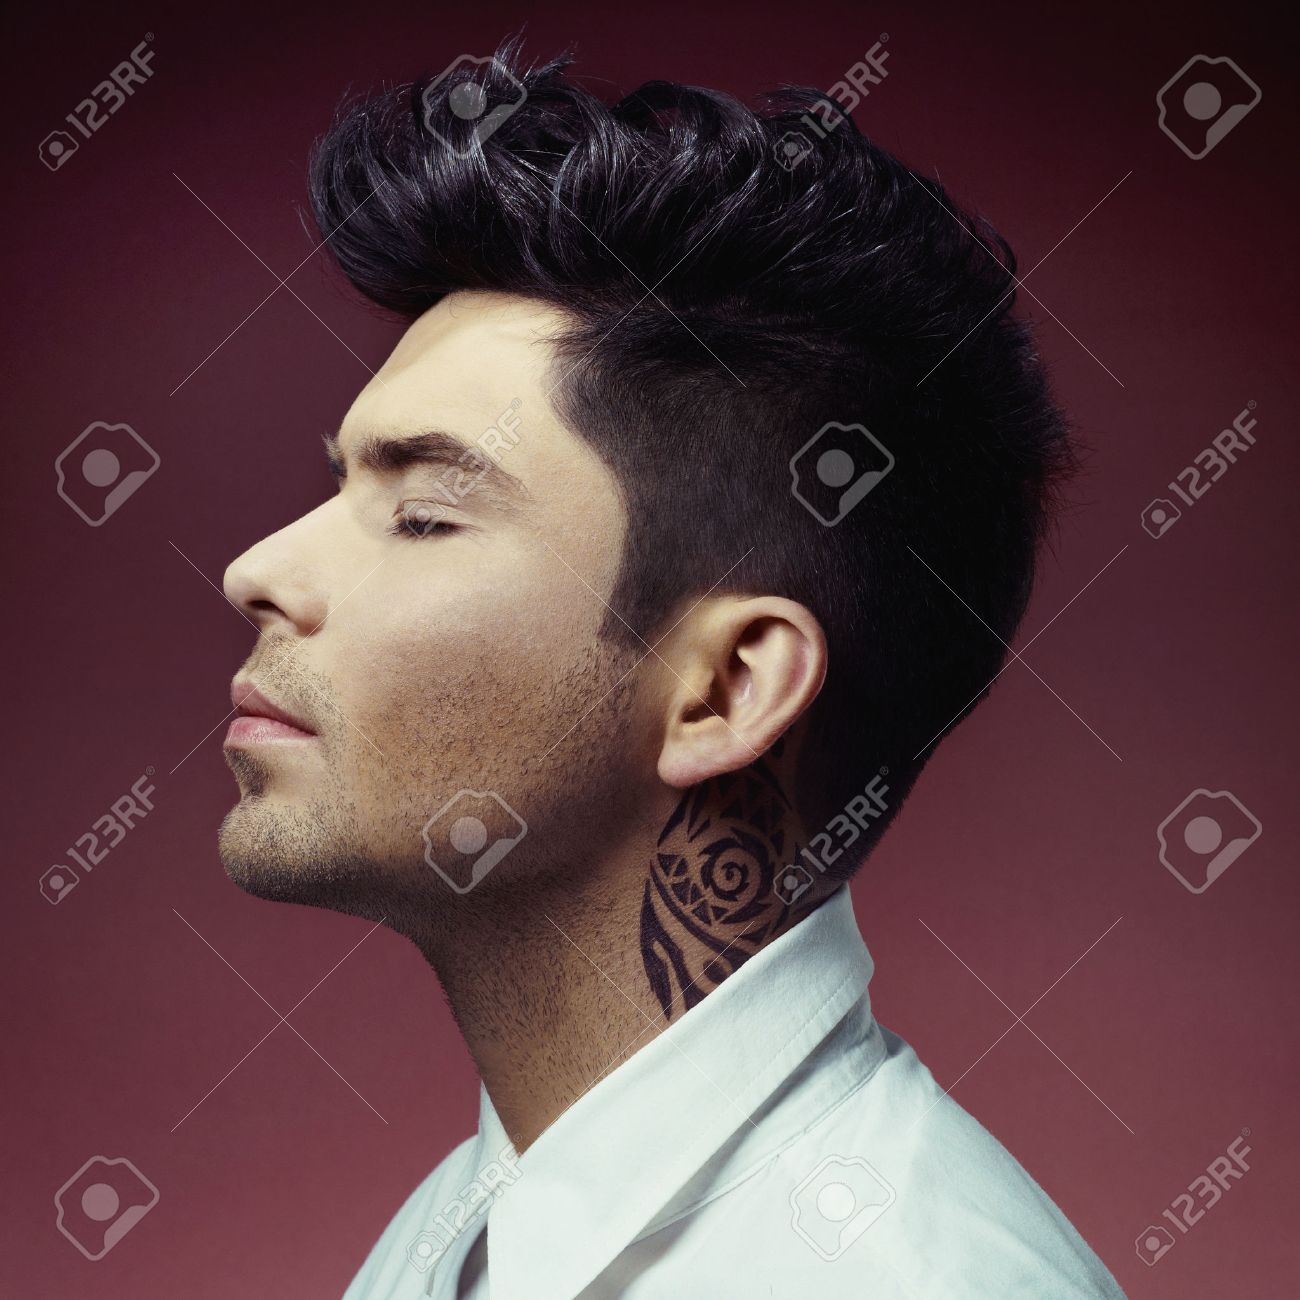 Portrait of handsome man with stylish haircut Standard-Bild - 35194758